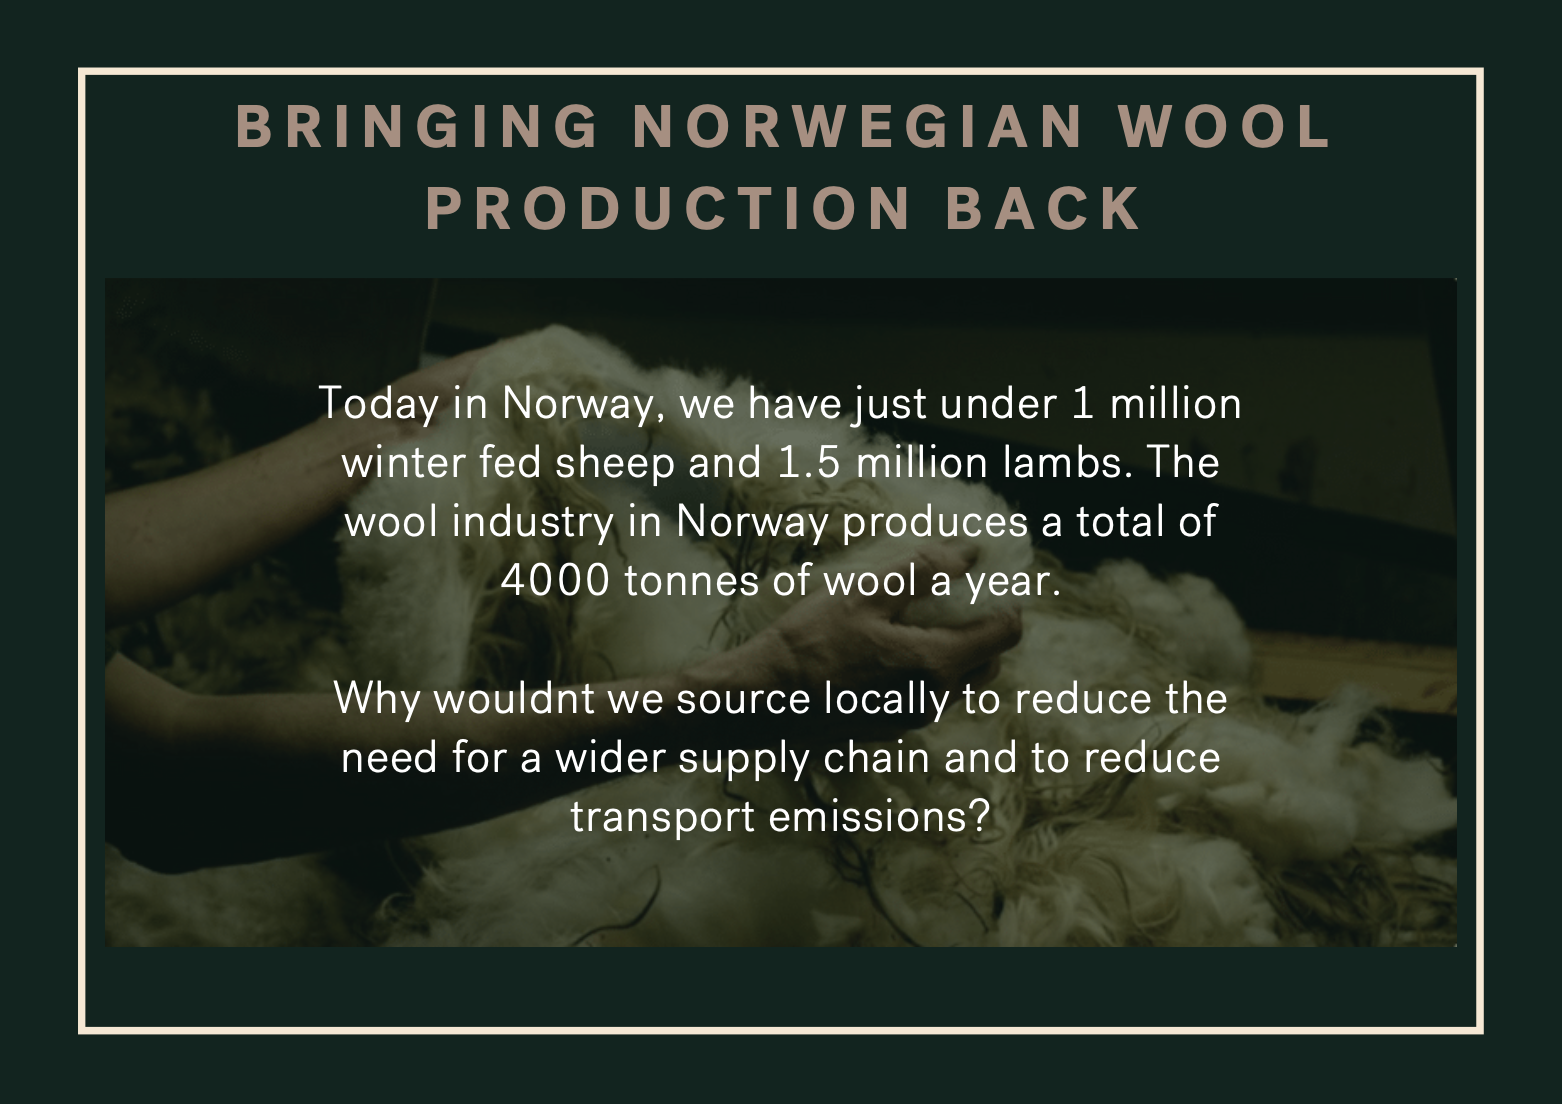 infographic on how flokk use norwegian wool in their fabric production to create sustainable office furniture